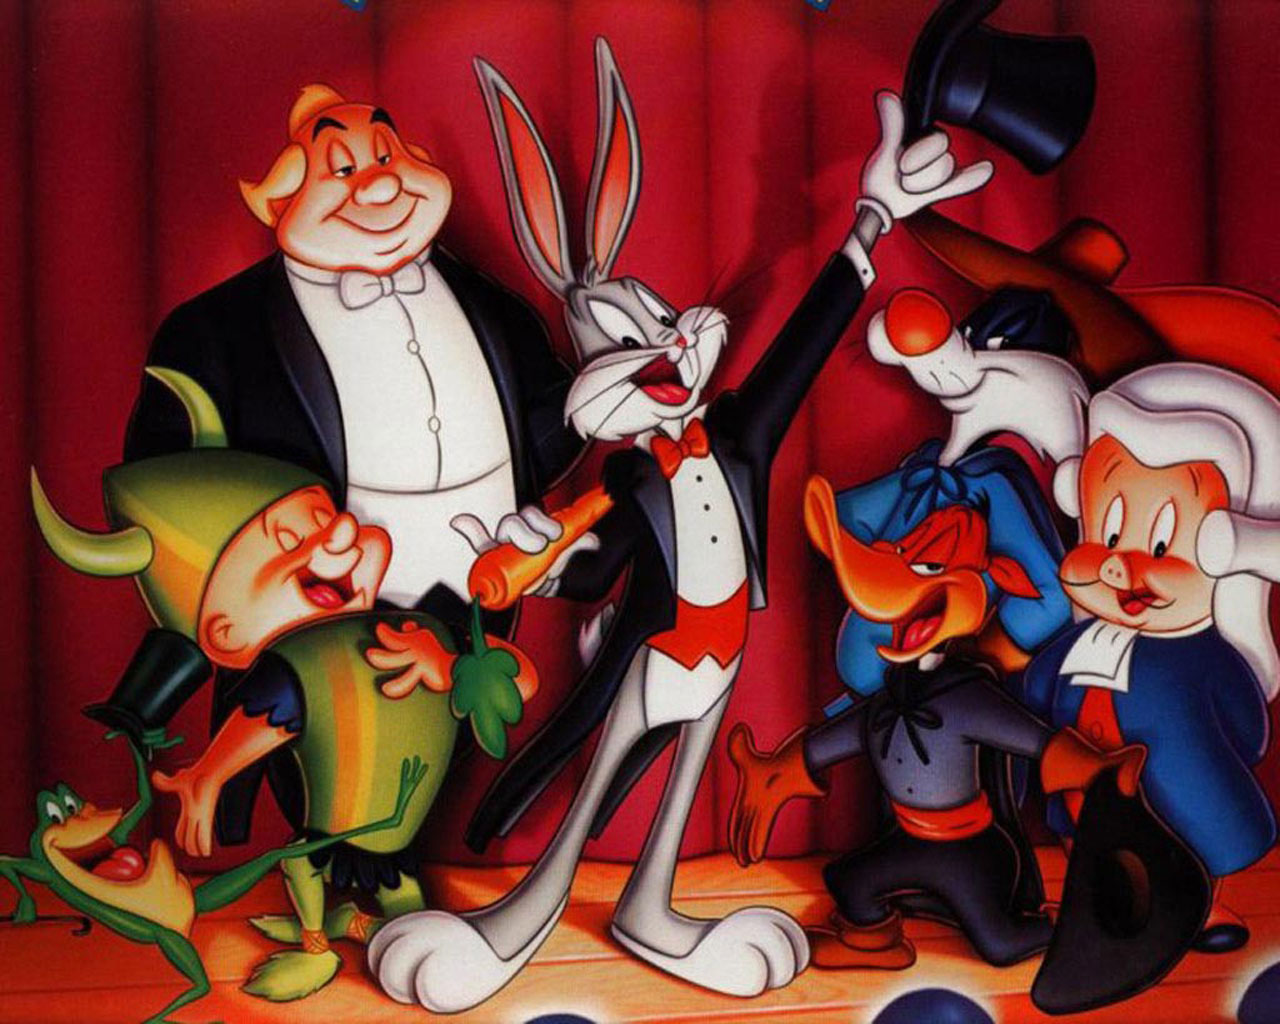 HD Desktop Wallpaper bugs bunny wallpaper 1280x1024